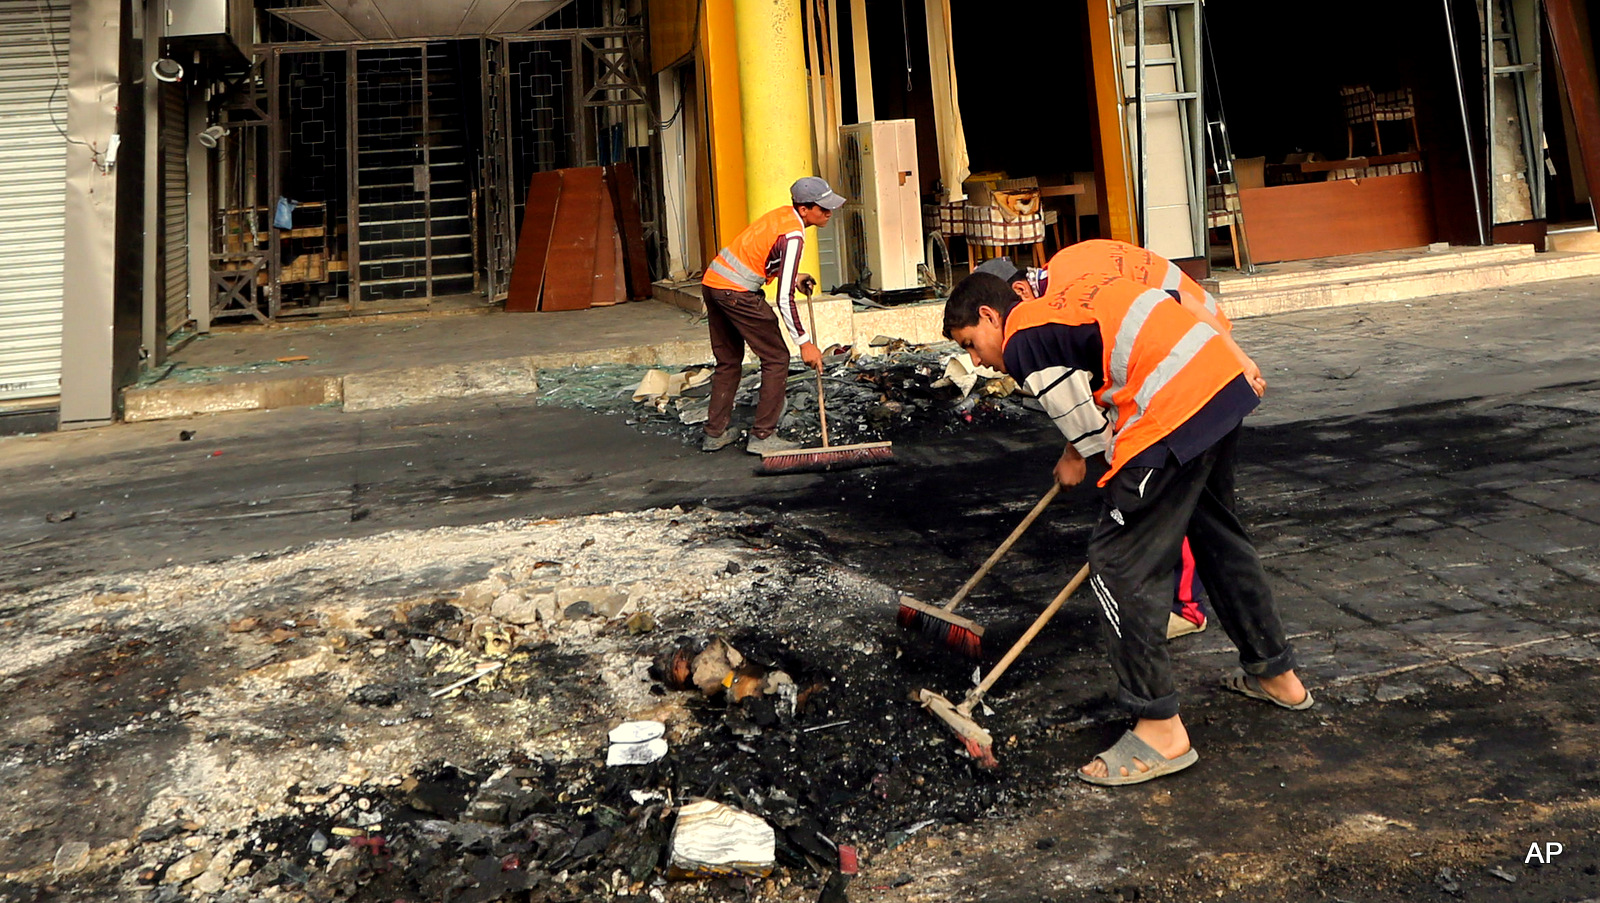 Municipality workers clean up debris in the aftermath of a car bomb explosion in Baghdad's western district of Mansour, Iraq, Tuesday, April 28, 2015. (Hadi Mizban/AP Photo)